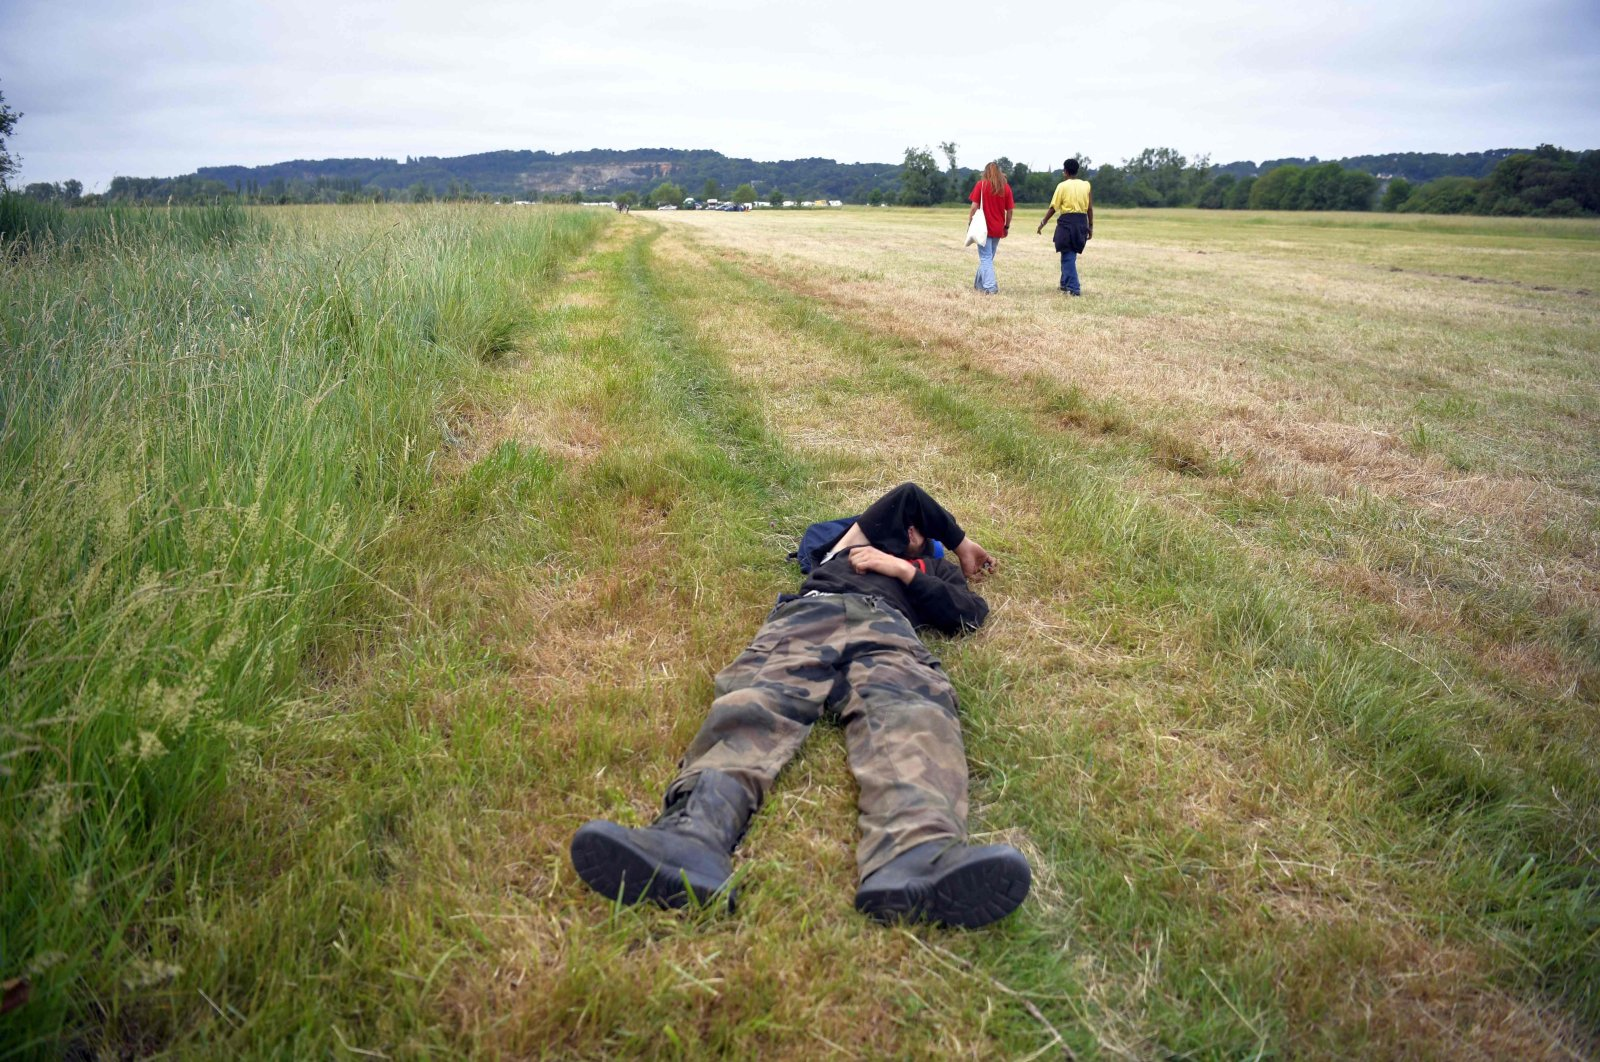 Two participants of an illegal rave party cross a field while another lies on the ground, in Redon, northwestern France, June 19, 2021. (AFP Photo)